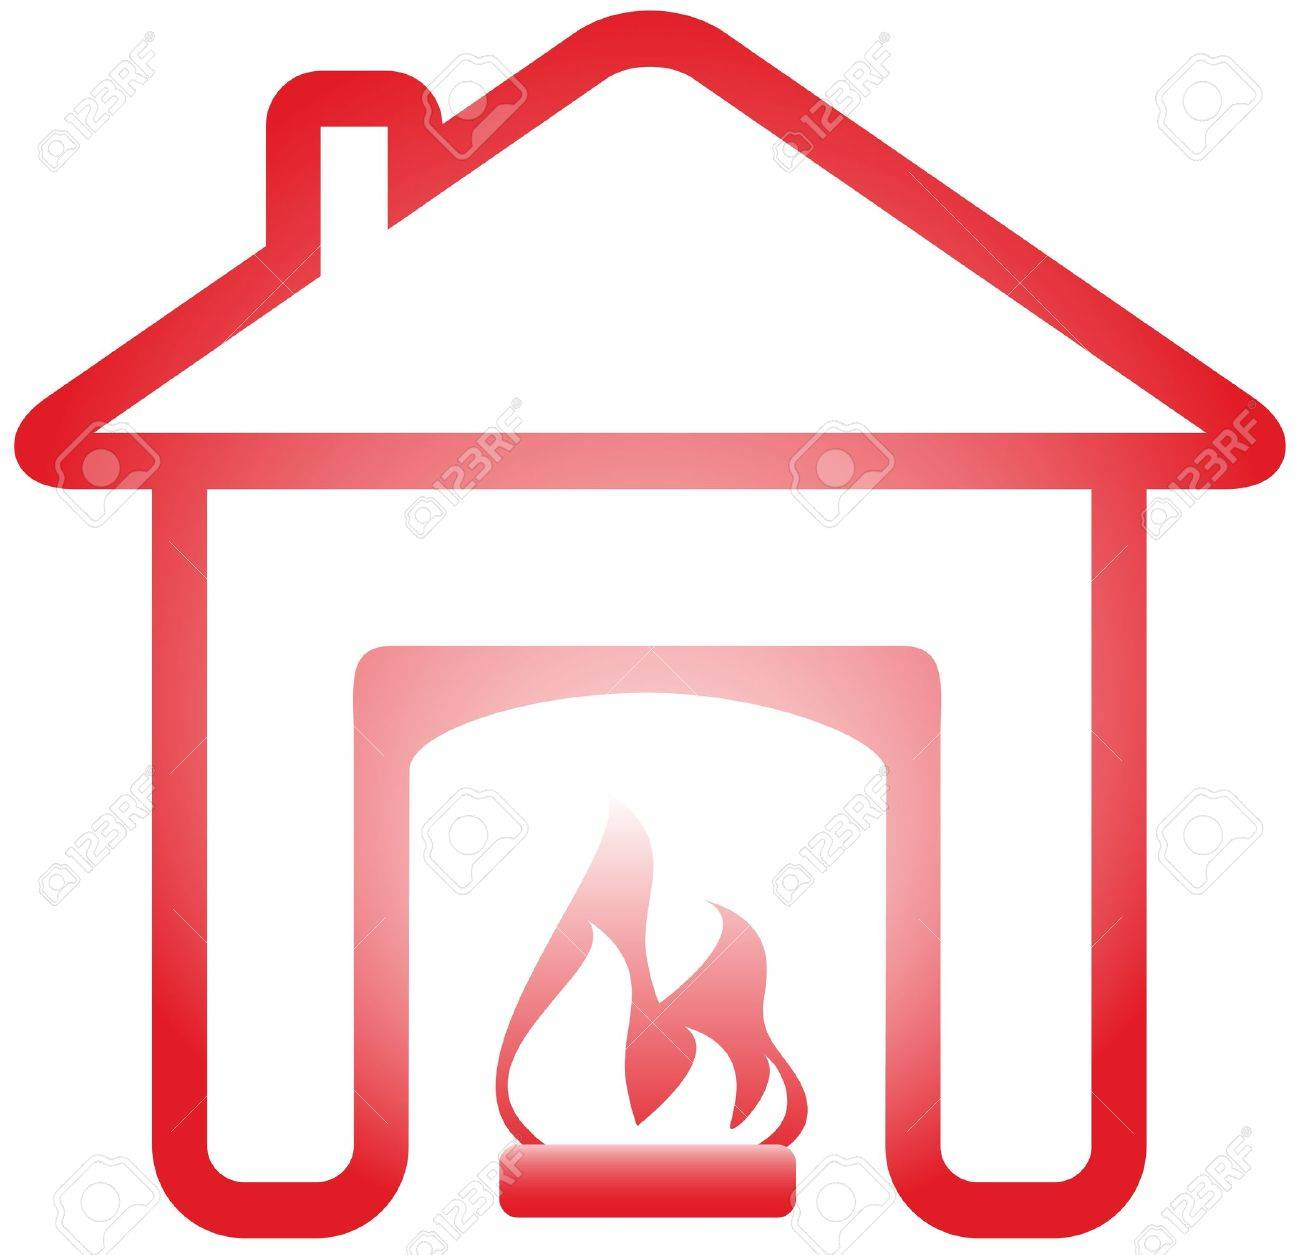 4,804 Isolated Fireplace Stock Vector Illustration And Royalty ...